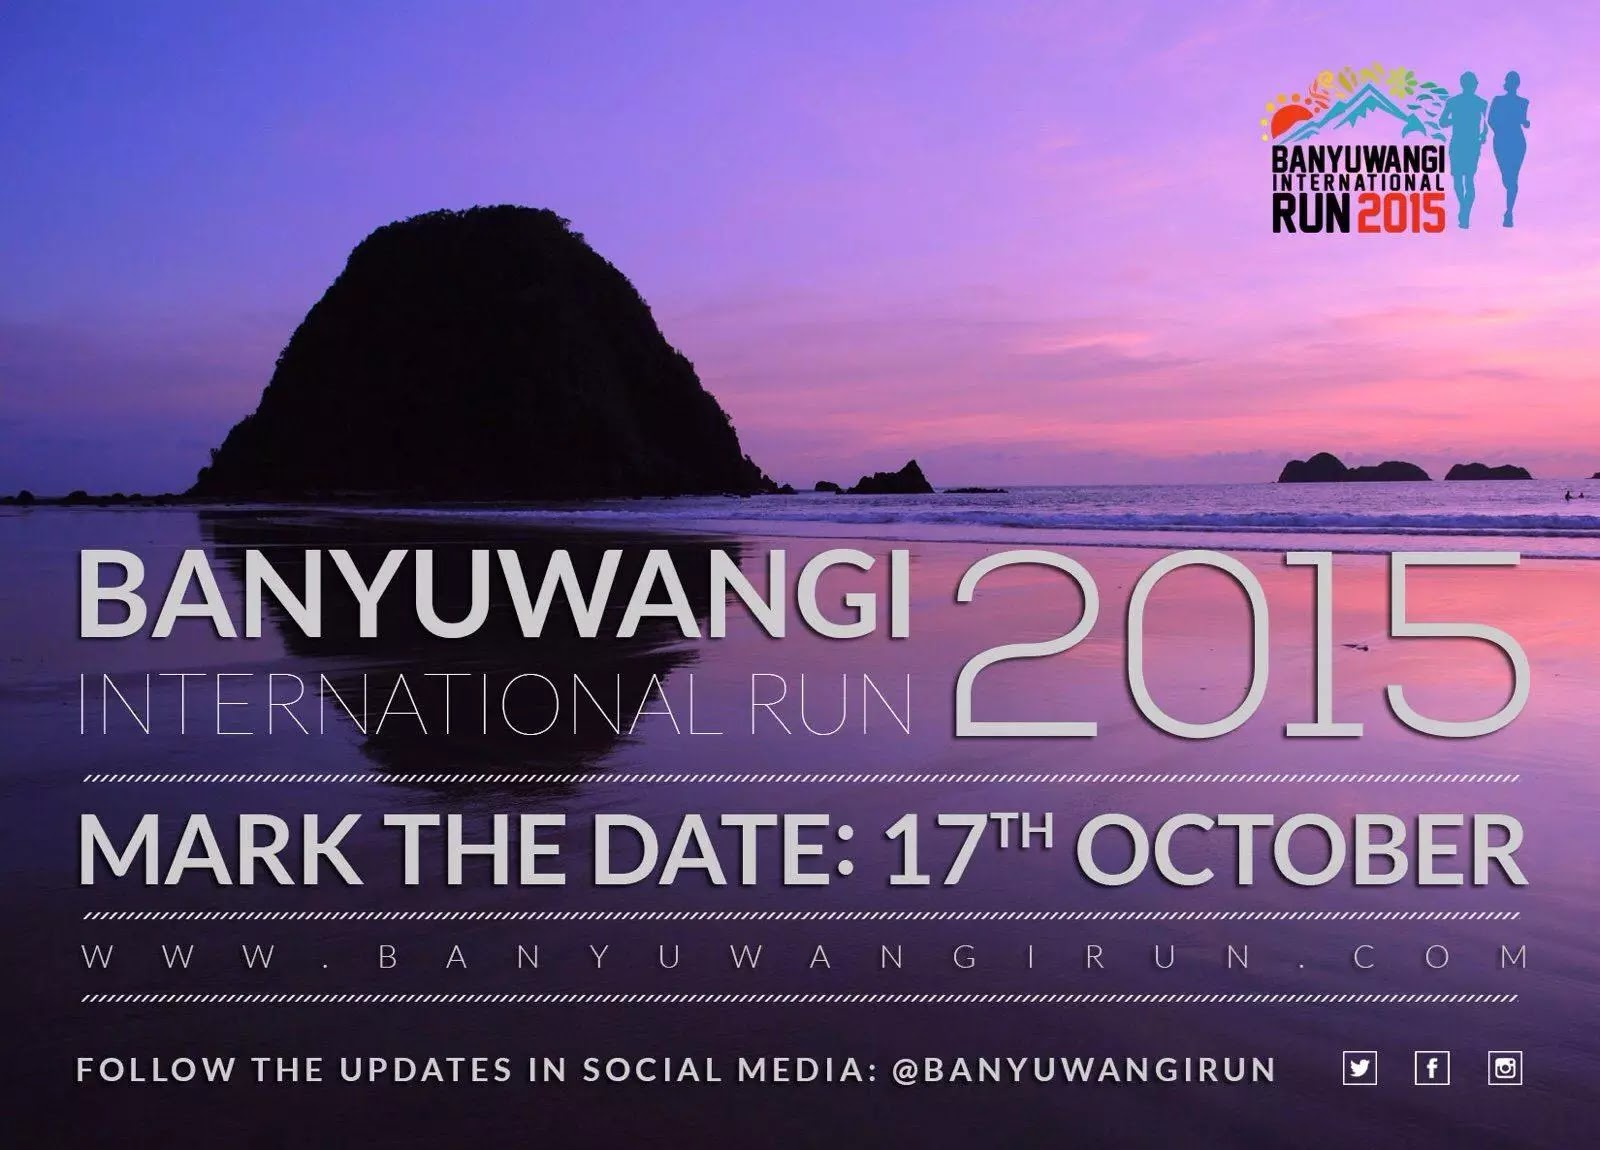 BANYUWANGI INTERNATIONAL RUN 2015